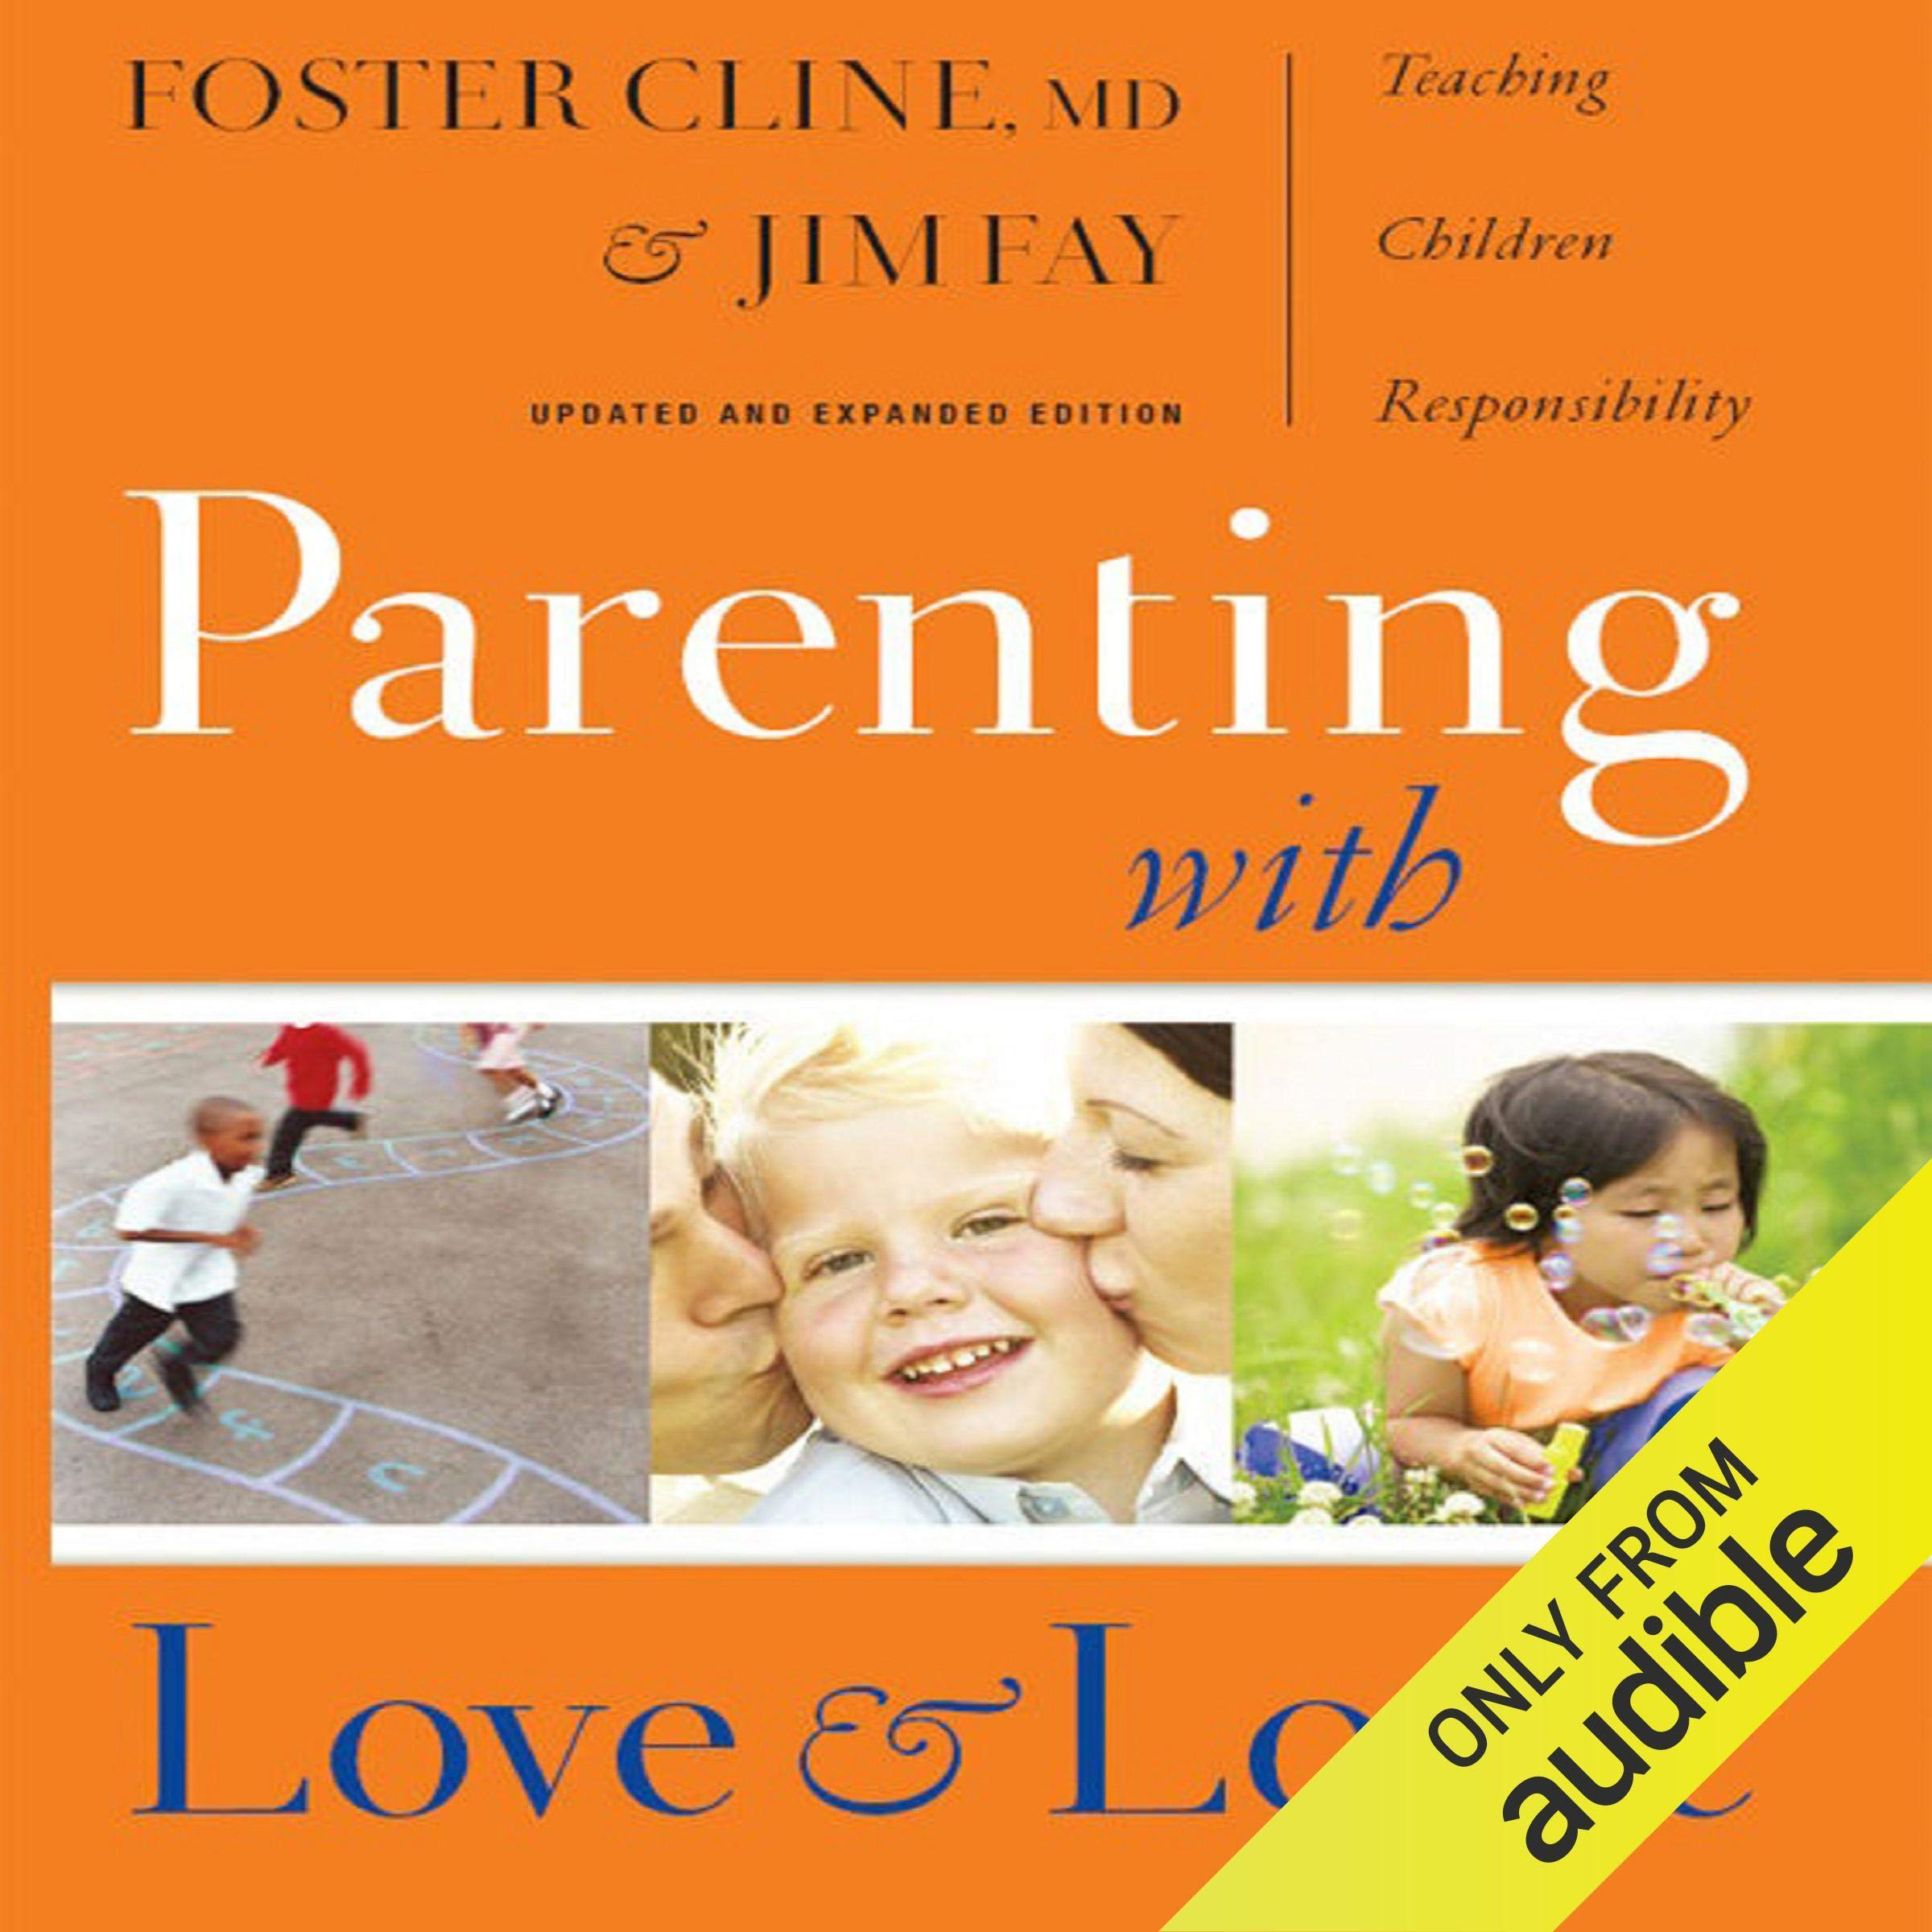 Parenting With Love And Logic  Teaching Children Responsibility    Updated And Expanded Edition